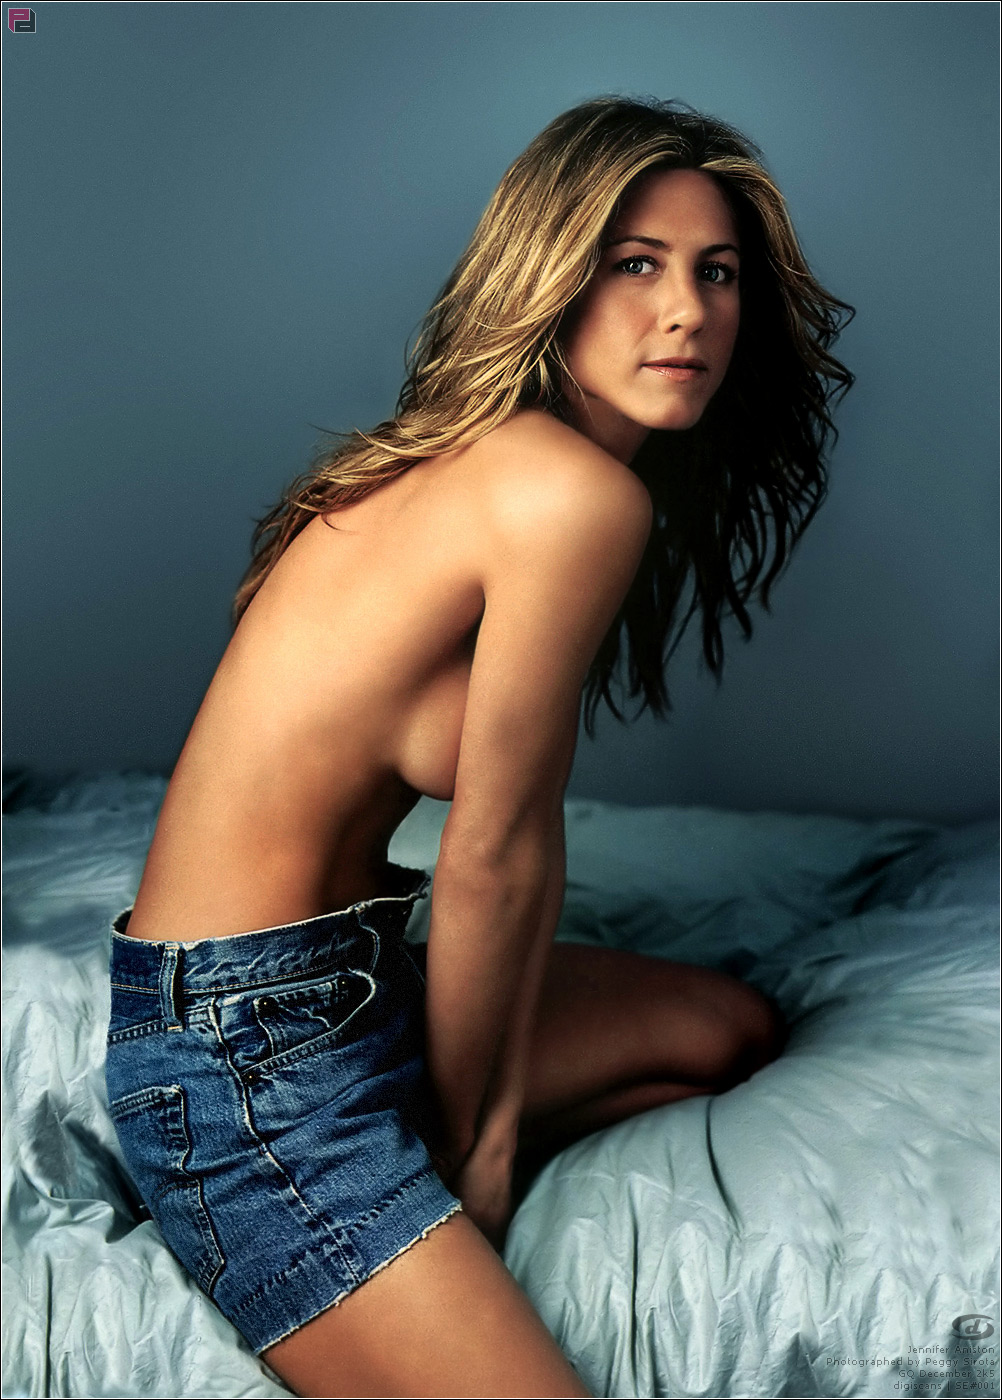 Erotic jennifer anniston photos